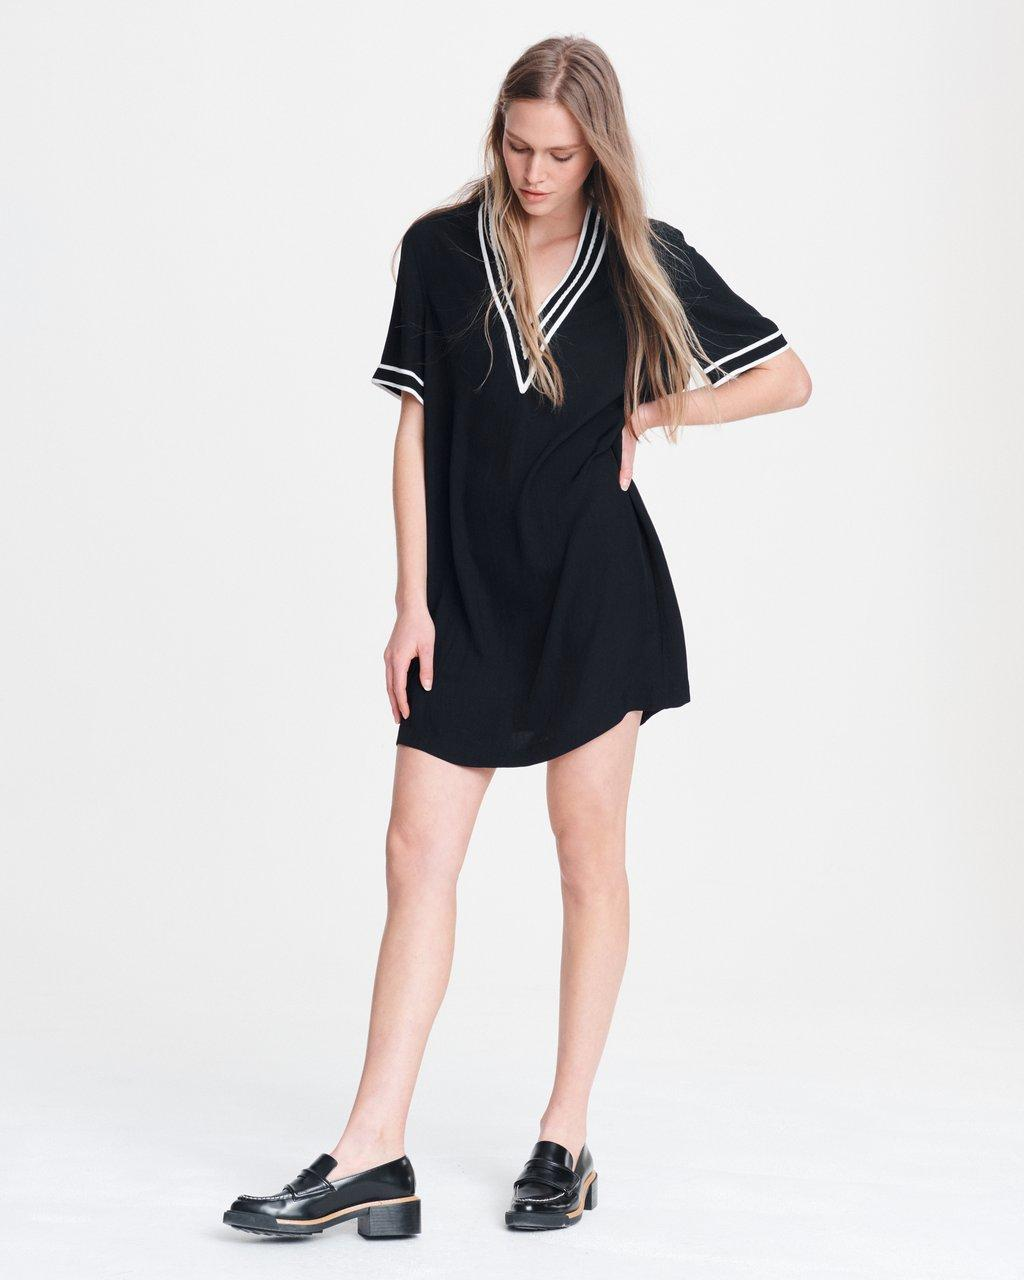 ALTHEA V-NECK DRESS